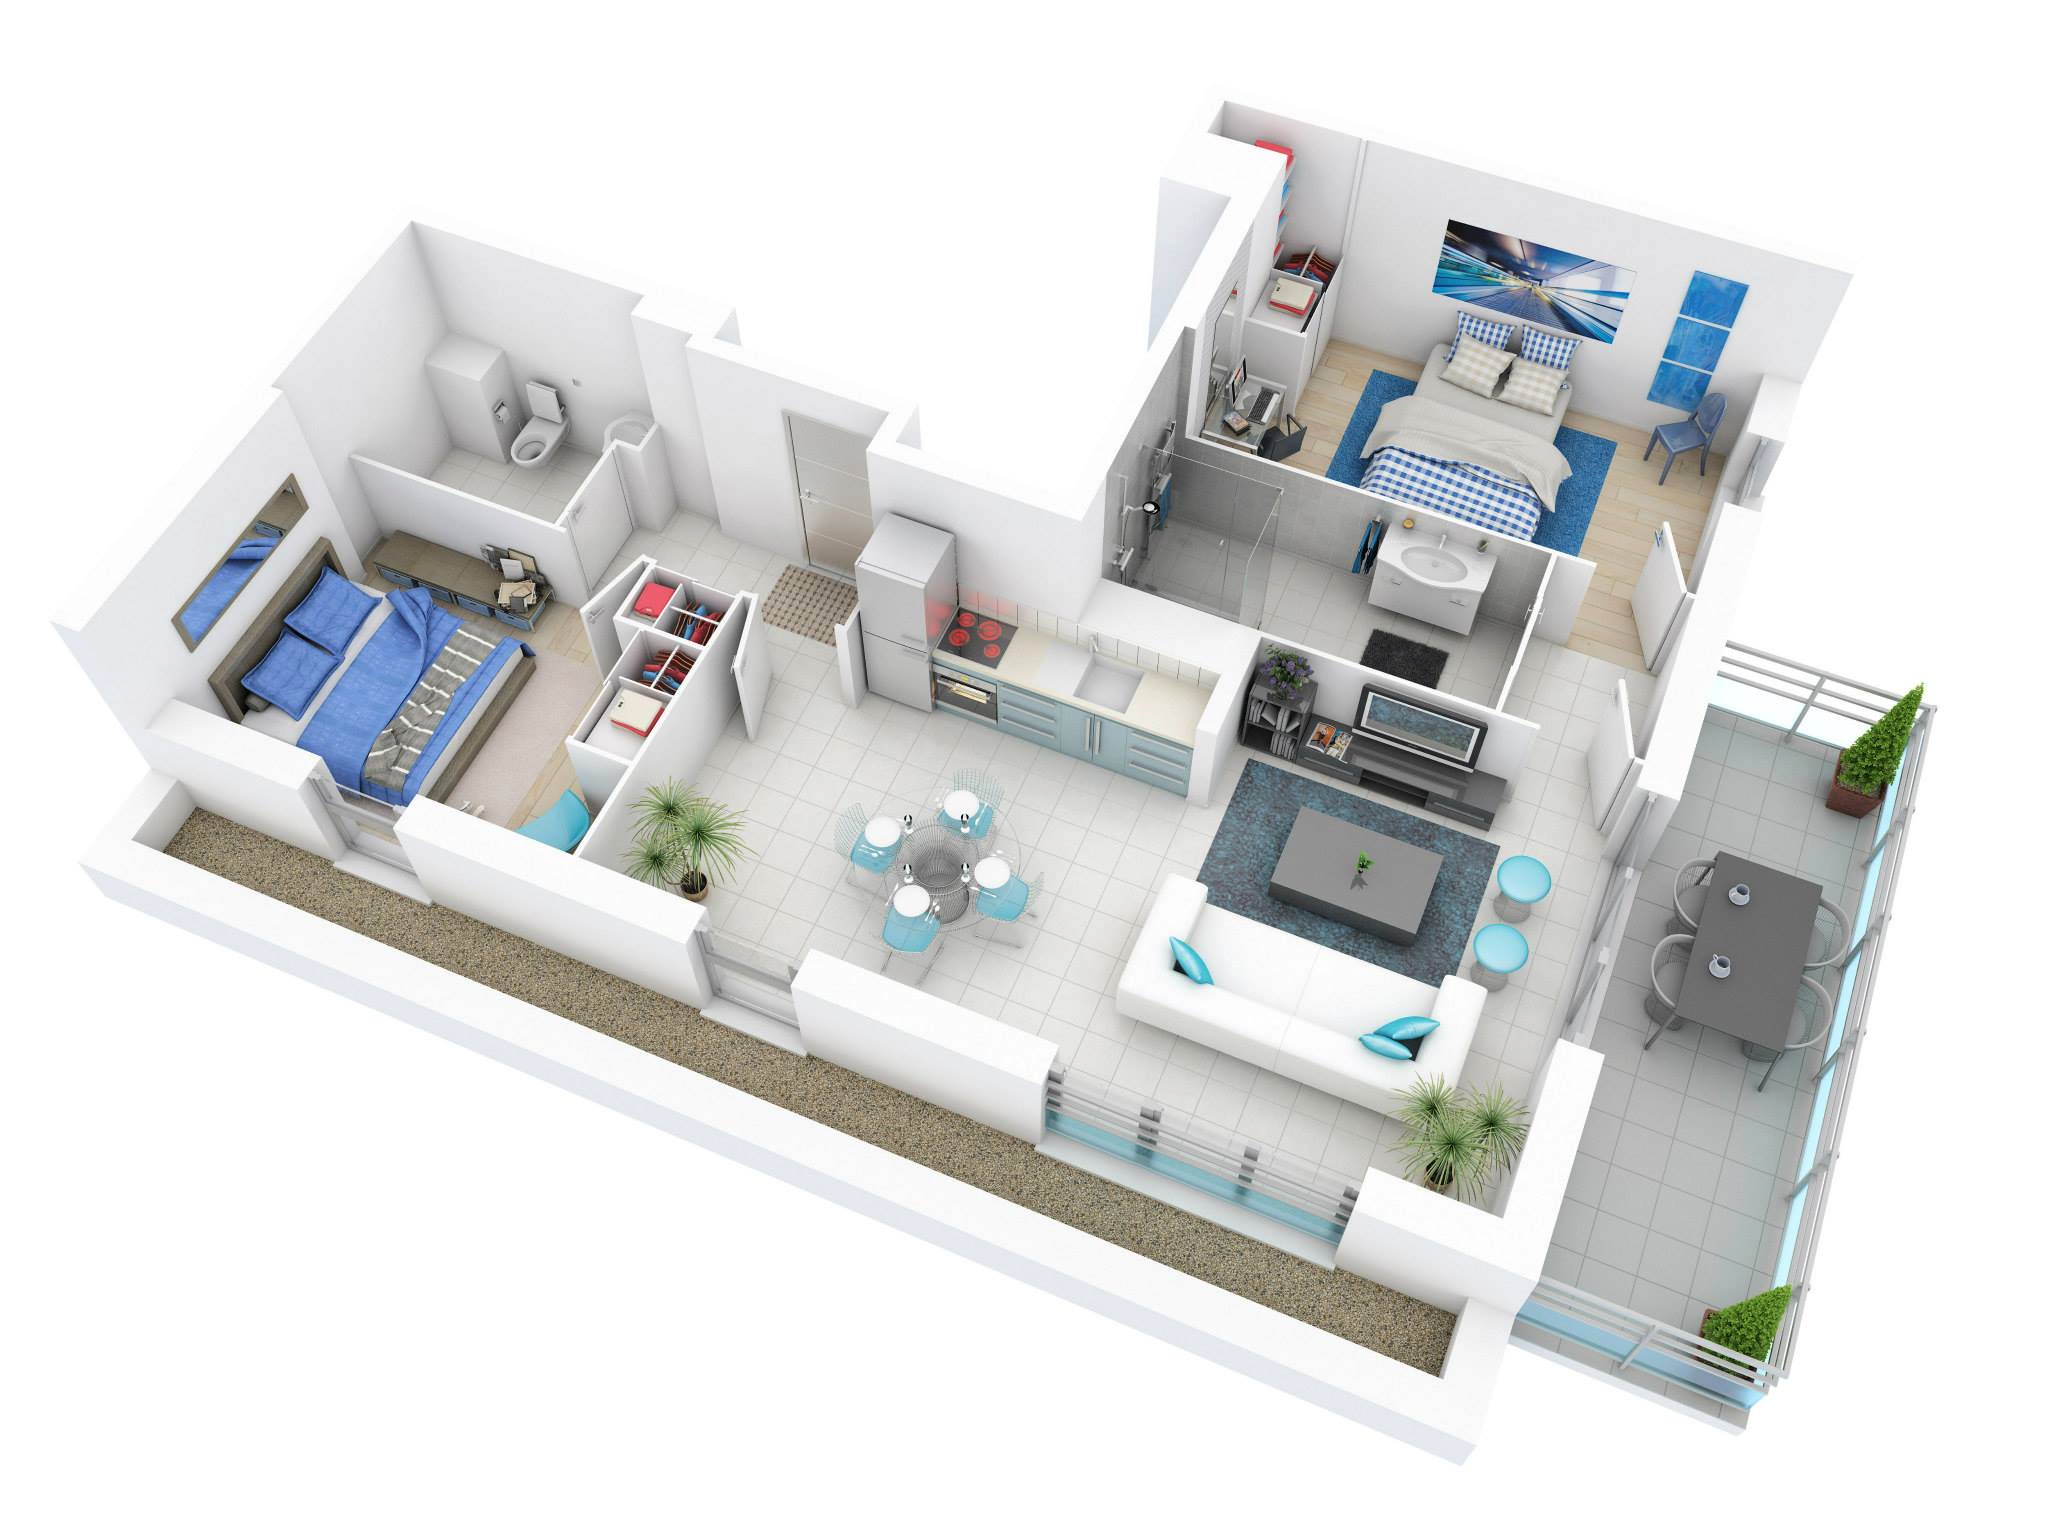 25 More 2 Bedroom 3d Floor Plans House Plans With Pictures Floor Plan Design 3d House Plans